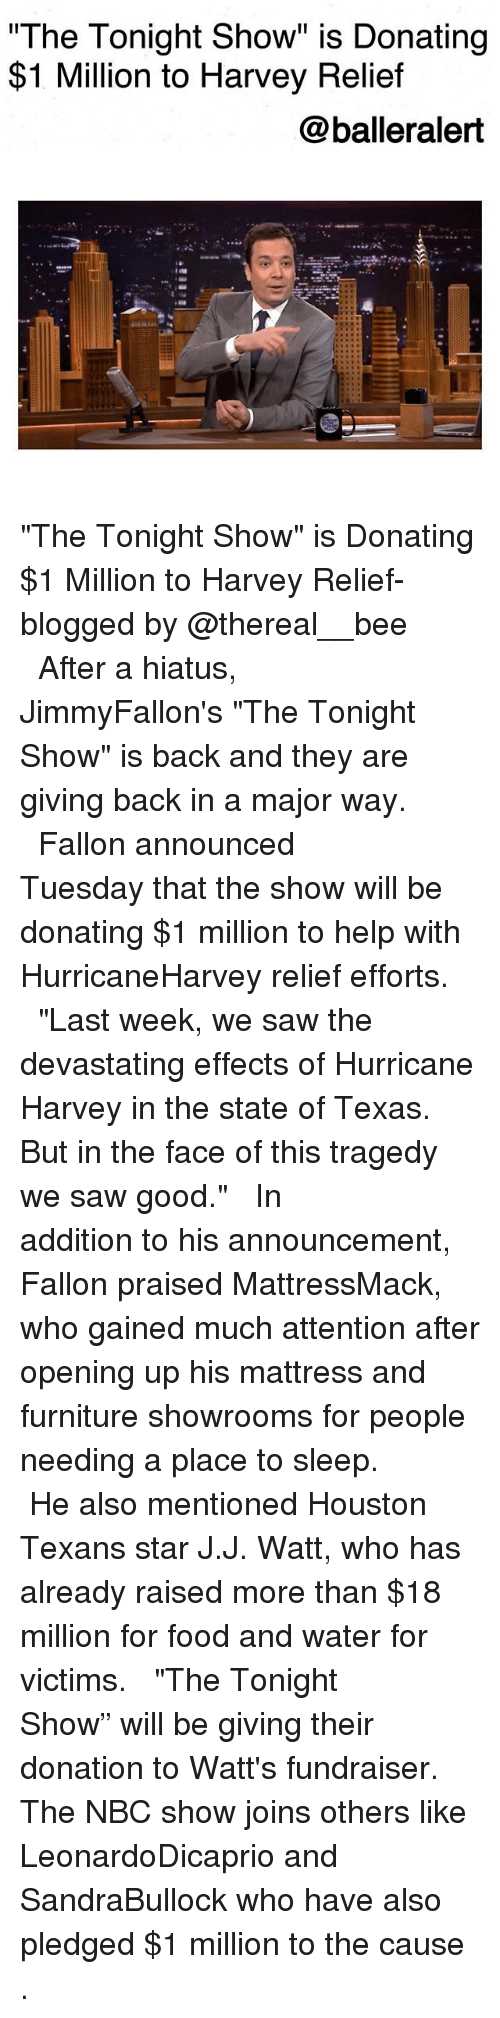 "Food, Memes, and Saw: The Tonight Show"" is Donating  $1 Million to Harvey Relief  @balleralert  s@汽. ""The Tonight Show"" is Donating $1 Million to Harvey Relief-blogged by @thereal__bee ⠀⠀⠀⠀⠀⠀⠀⠀⠀ ⠀⠀ After a hiatus, JimmyFallon's ""The Tonight Show"" is back and they are giving back in a major way. ⠀⠀⠀⠀⠀⠀⠀⠀⠀ ⠀⠀ Fallon announced Tuesday that the show will be donating $1 million to help with HurricaneHarvey relief efforts. ⠀⠀⠀⠀⠀⠀⠀⠀⠀ ⠀⠀ ""Last week, we saw the devastating effects of Hurricane Harvey in the state of Texas. But in the face of this tragedy we saw good."" ⠀⠀⠀⠀⠀⠀⠀⠀⠀ ⠀⠀ In addition to his announcement, Fallon praised MattressMack, who gained much attention after opening up his mattress and furniture showrooms for people needing a place to sleep. ⠀⠀⠀⠀⠀⠀⠀⠀⠀ ⠀⠀ He also mentioned Houston Texans star J.J. Watt, who has already raised more than $18 million for food and water for victims. ⠀⠀⠀⠀⠀⠀⠀⠀⠀ ⠀⠀ ""The Tonight Show"" will be giving their donation to Watt's fundraiser. The NBC show joins others like LeonardoDicaprio and SandraBullock who have also pledged $1 million to the cause ."